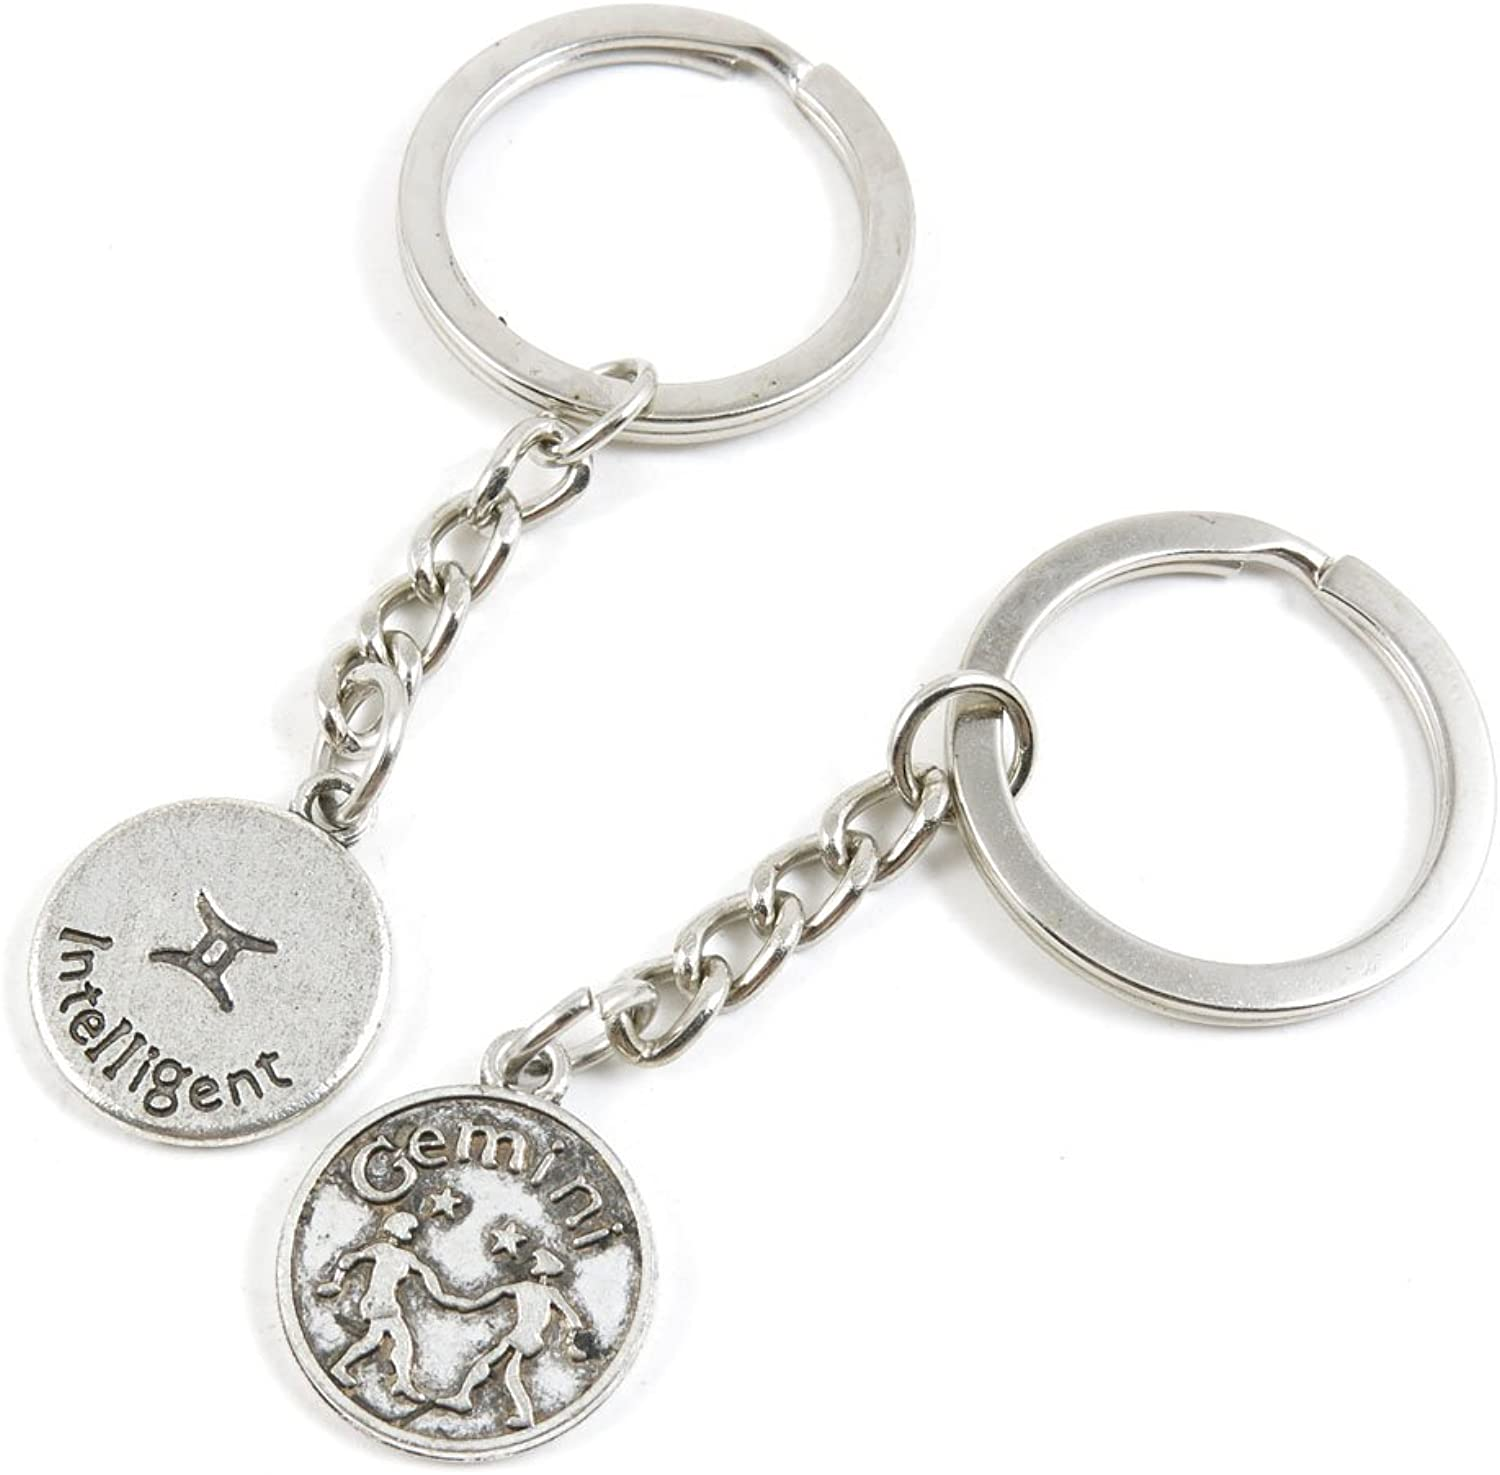 100 Pieces Keychain Keyring Door Car Key Chain Ring Tag Charms Bulk Supply Jewelry Making Clasp Findings K7UL0A Gemini